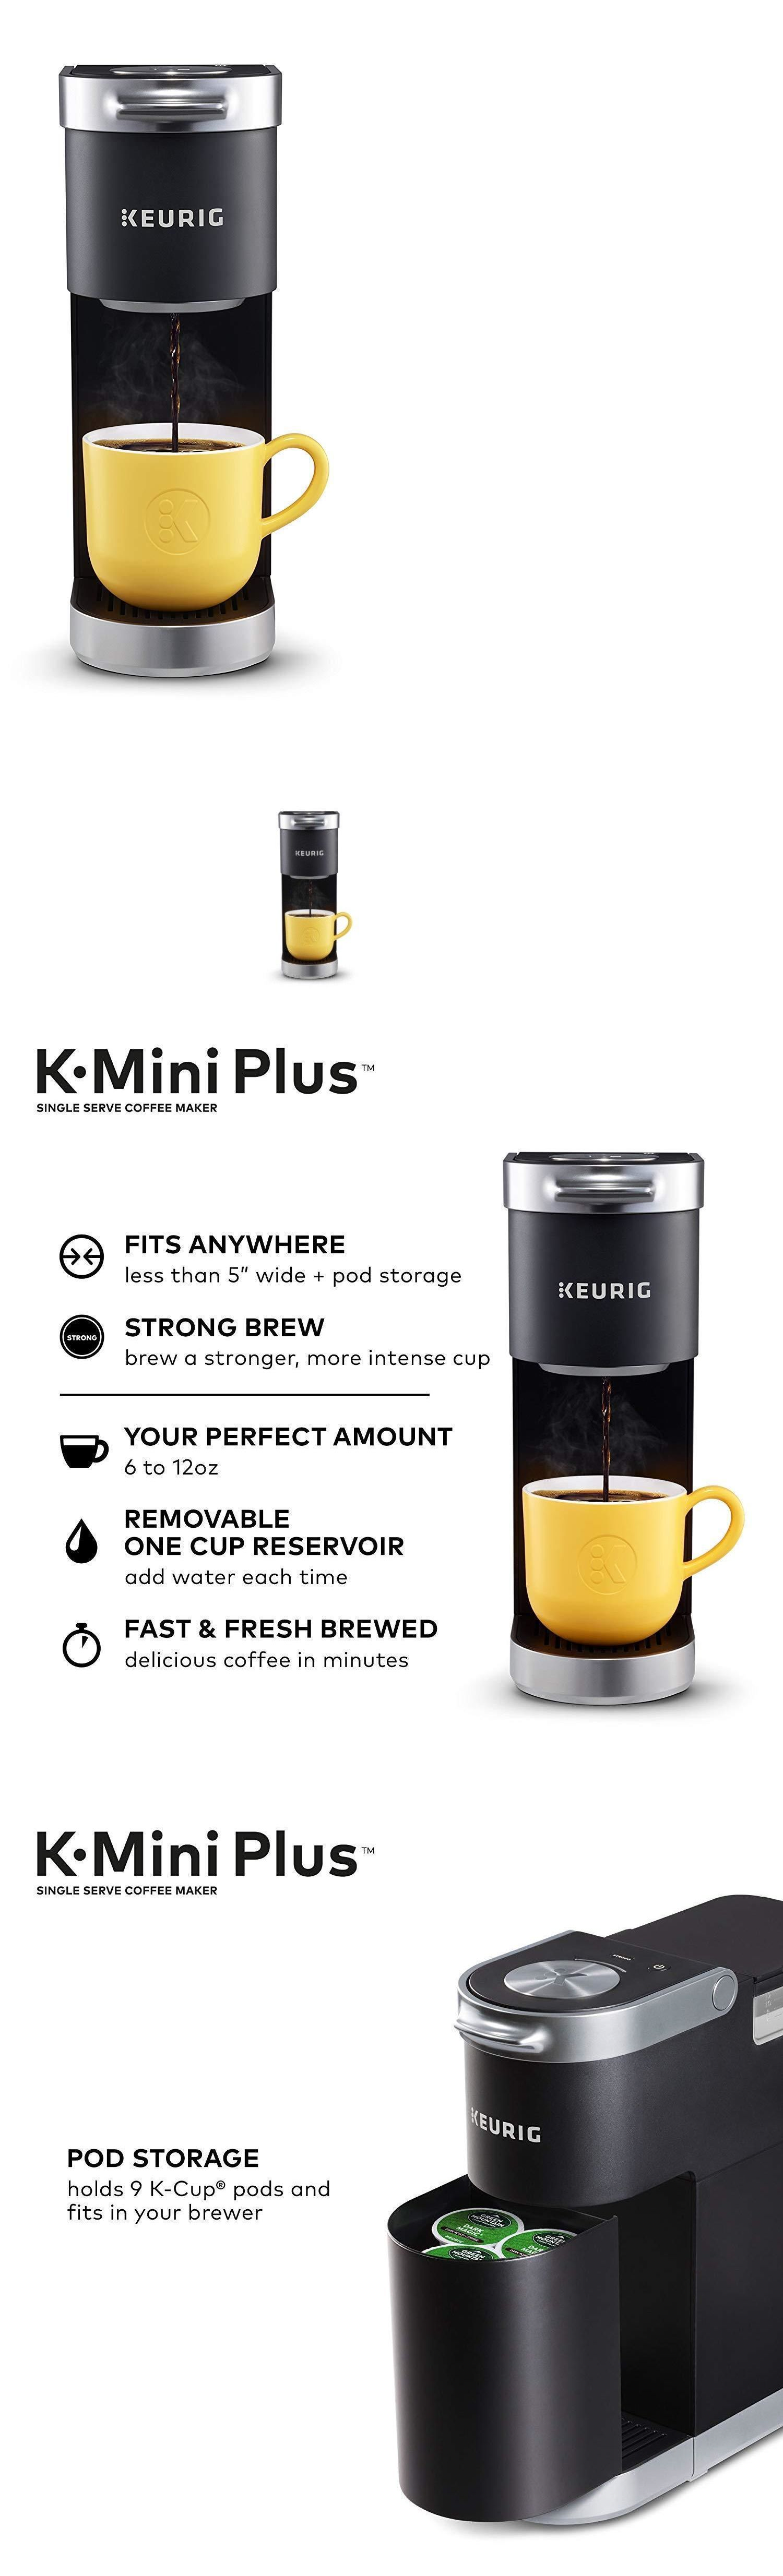 Filter Coffee Machines 184665 Keurig KMini Plus Single